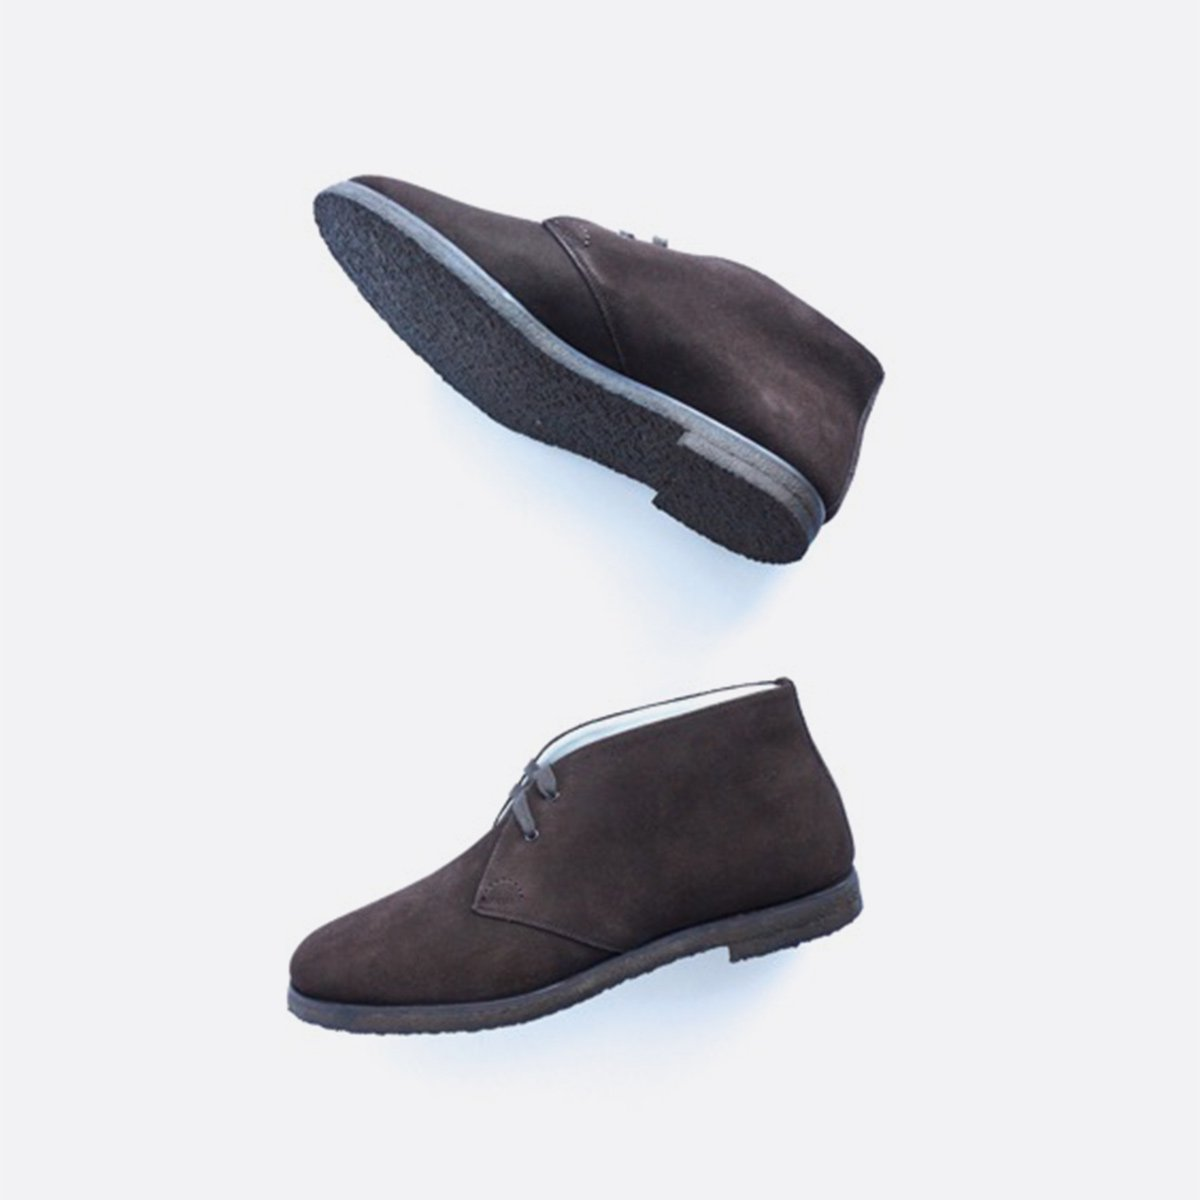 FOOTSTOCK ORIGINALS CHUKKA BOOTS  (DARK BROWN SUEDE)4